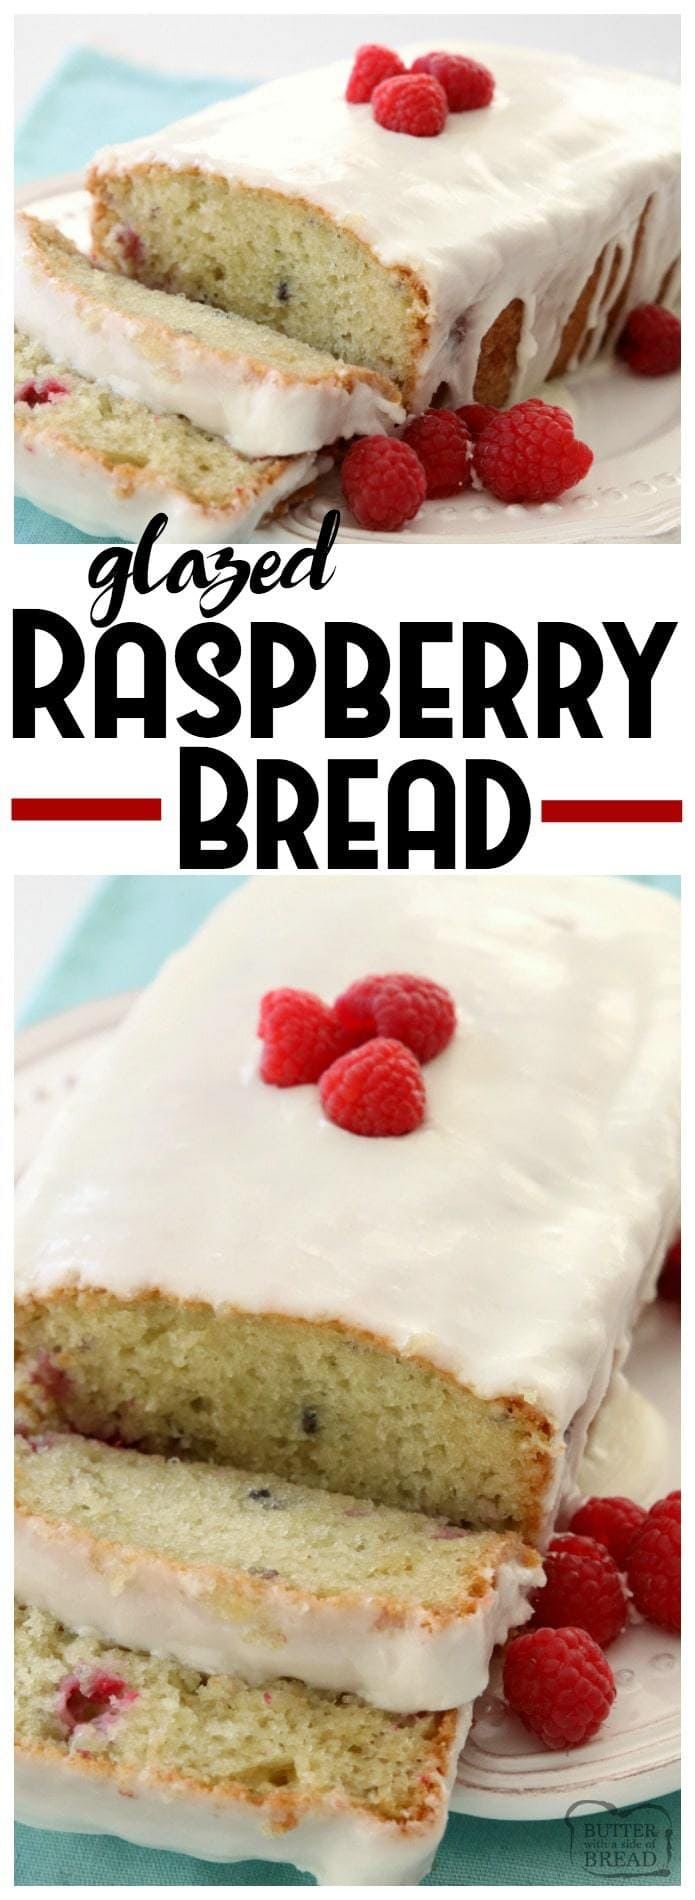 Glazed Raspberry Bread is an easy quick bread recipe made with yogurt and fresh raspberries & topped with an almond glaze. Incredible flavor and perfectly light & moist #raspberry #bread. Easy bread #recipe from Butter With A Side of Bread #quickbread #baking